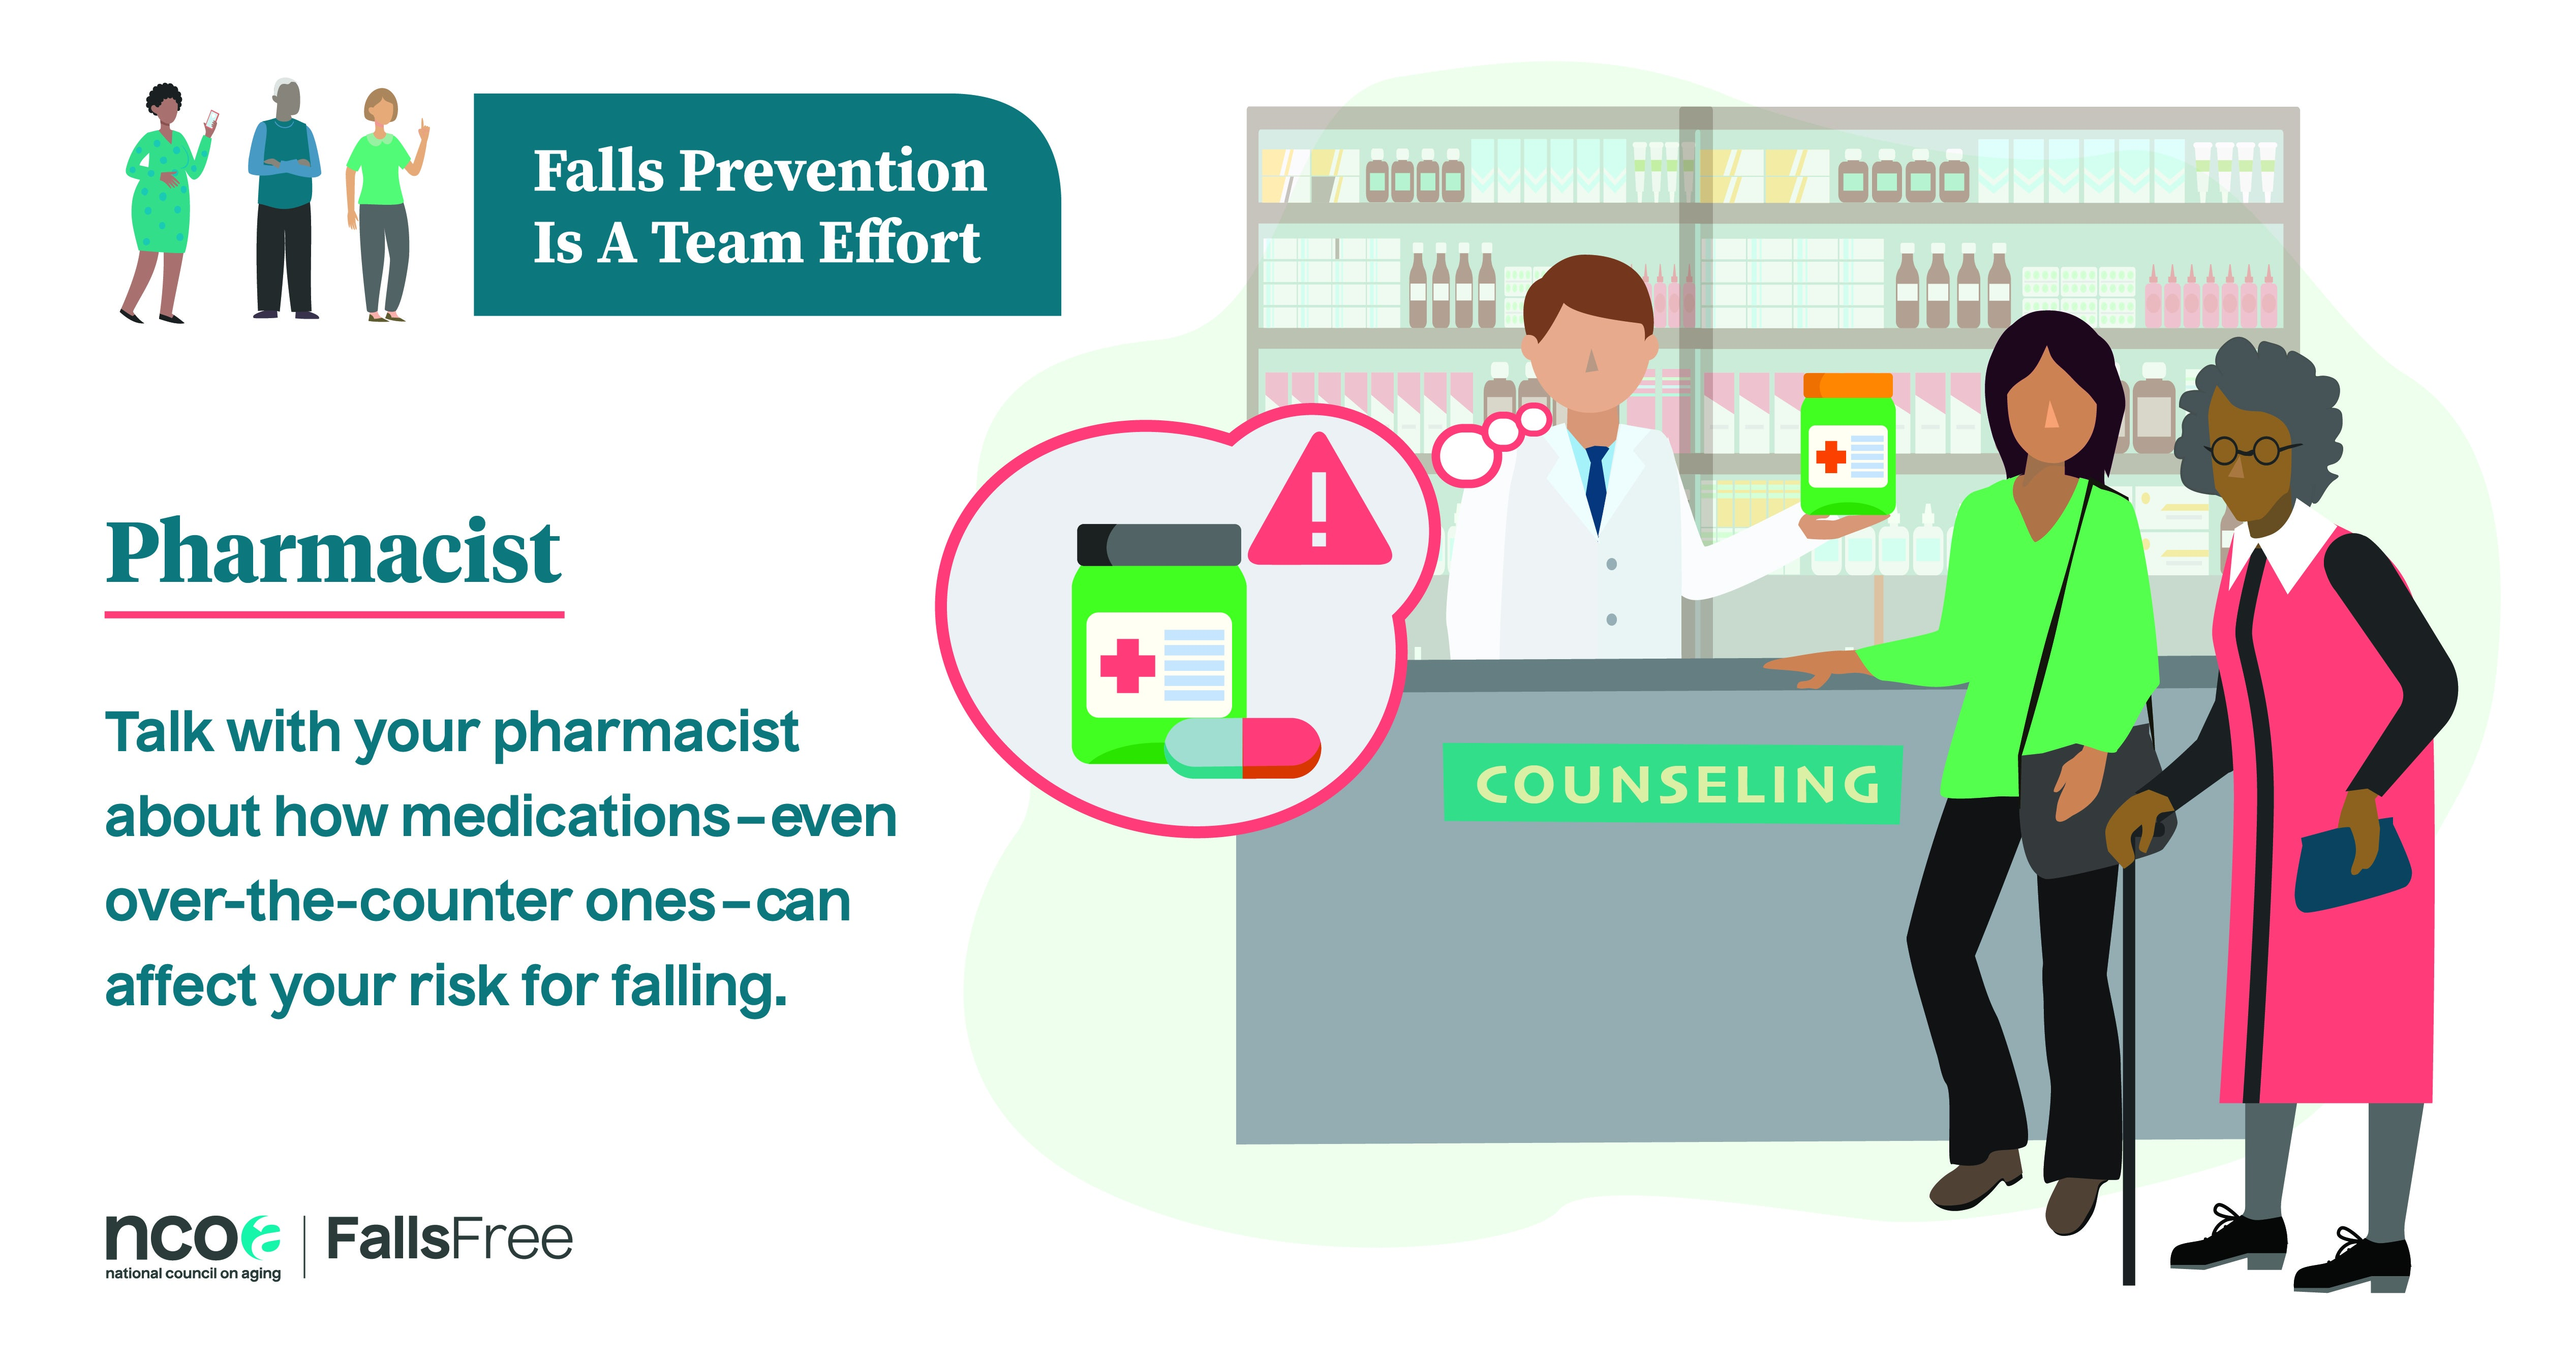 Falls prevention is a team effort. Talk with your pharamacist about how medication can affect your risk for falling